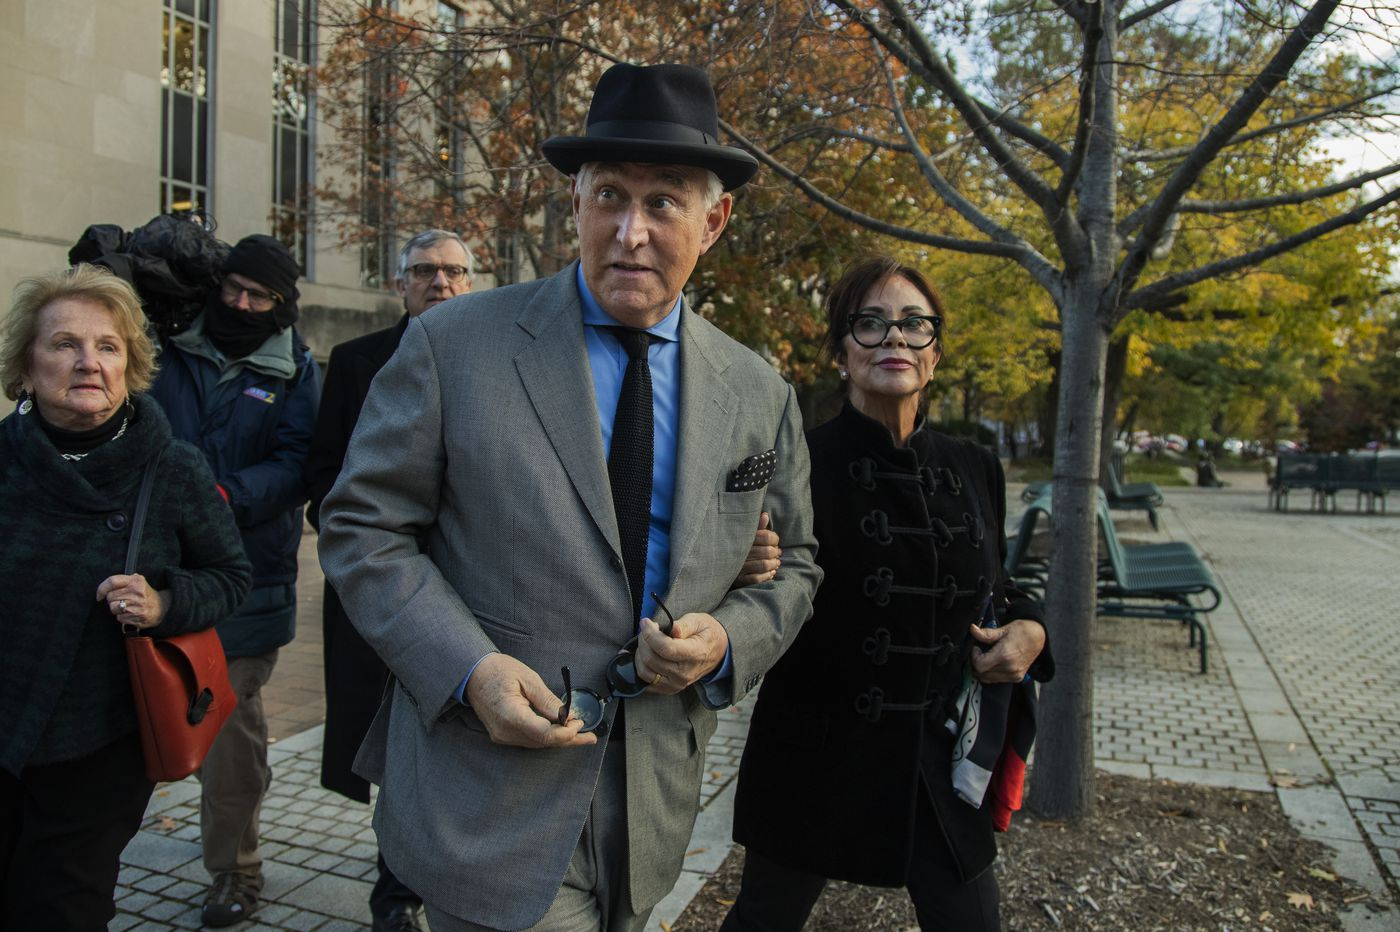 Trump associate Roger Stone guilty of witness tampering, lying to Congress about attempts to contact WikiLeaks